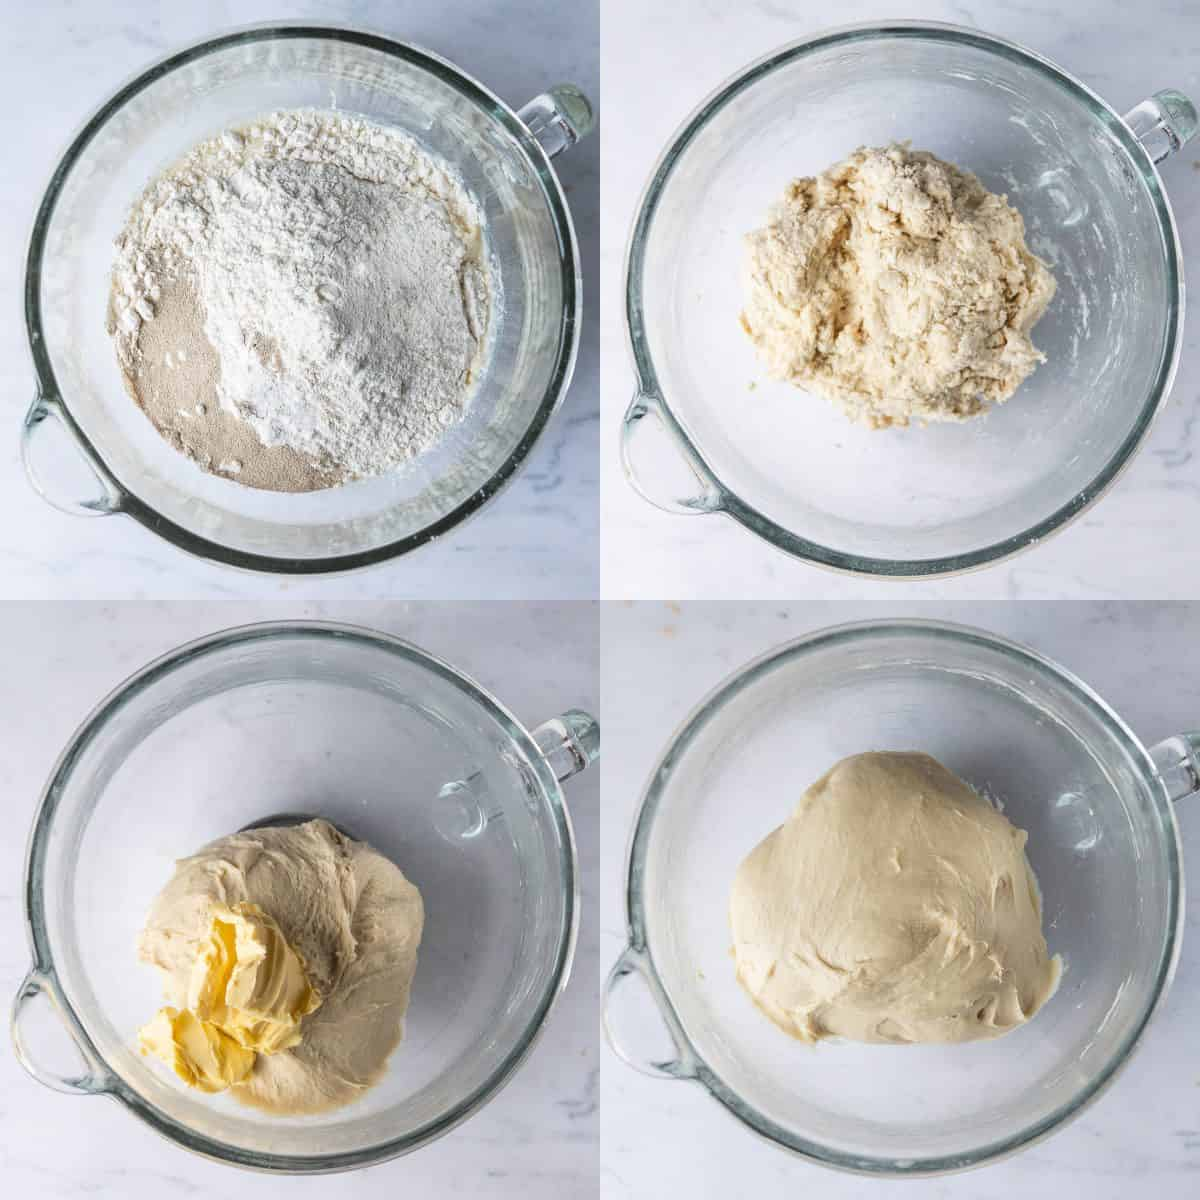 A four image collage of making the bread dough.